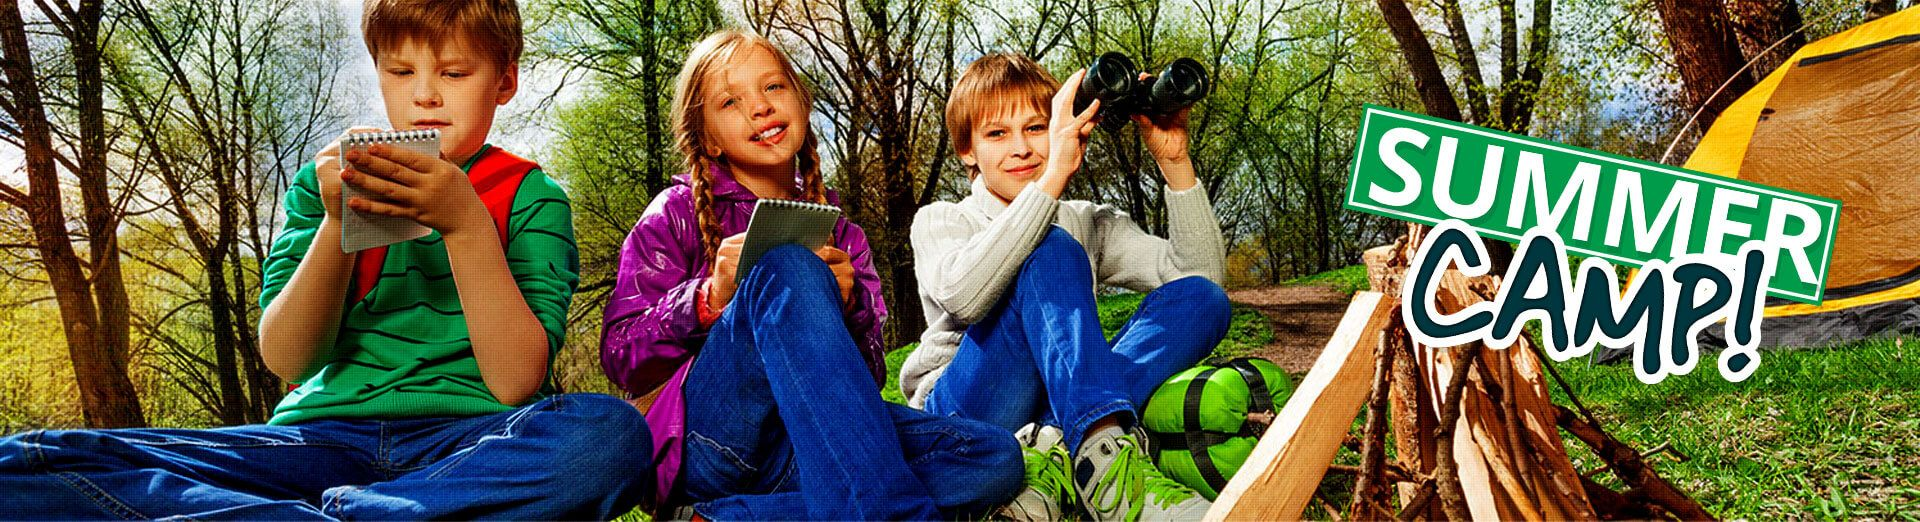 Why Not Start a Summer Camp? You Can Make a Difference While Increasing Enrollment.